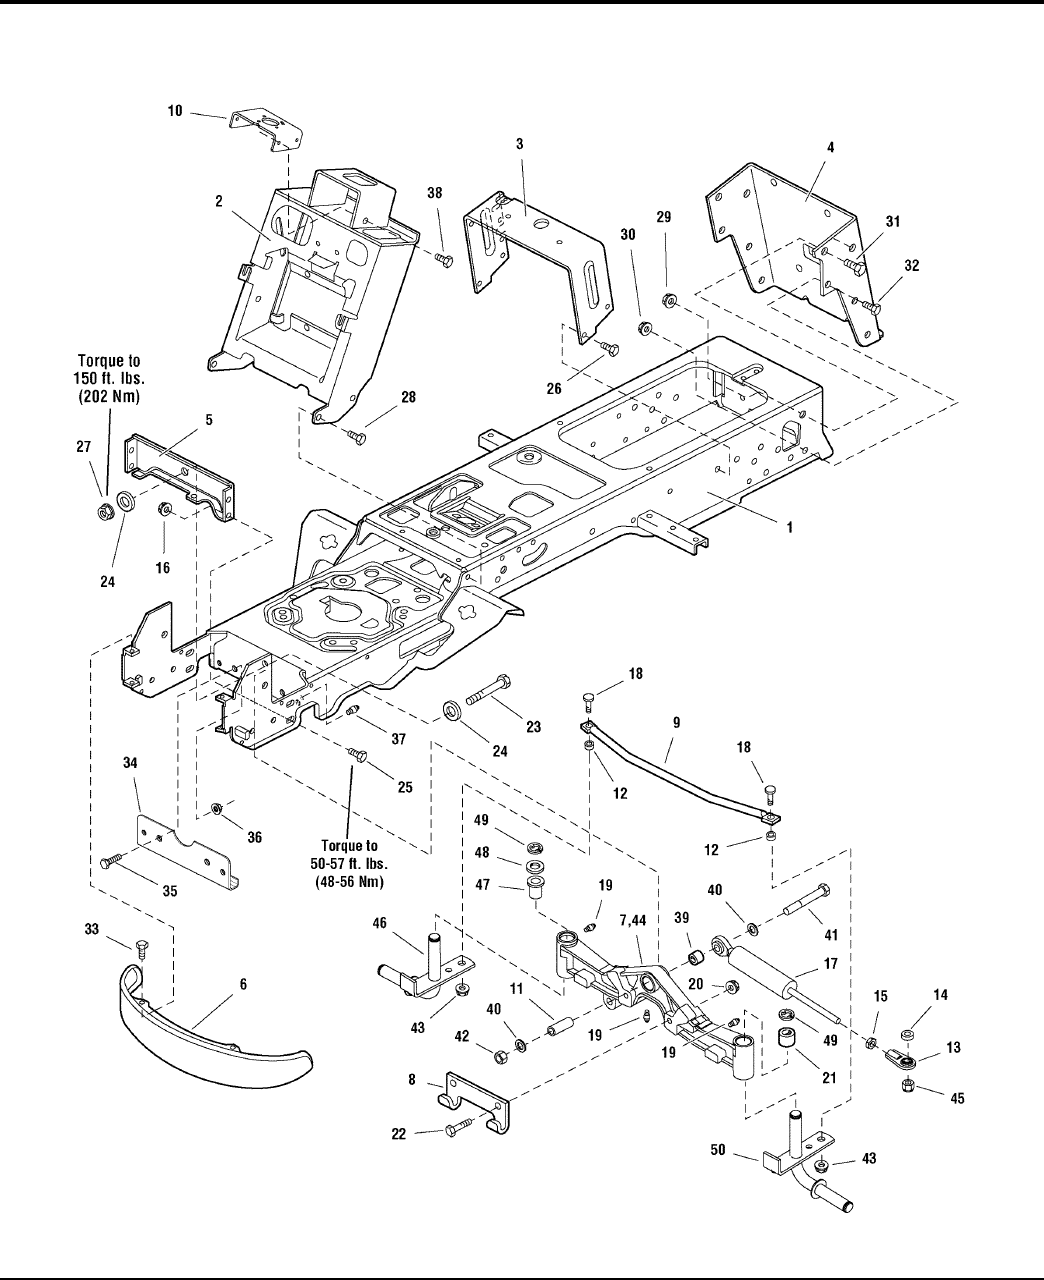 Page 8 of Simplicity Lawn Mower Conquest / 2700 User Guide